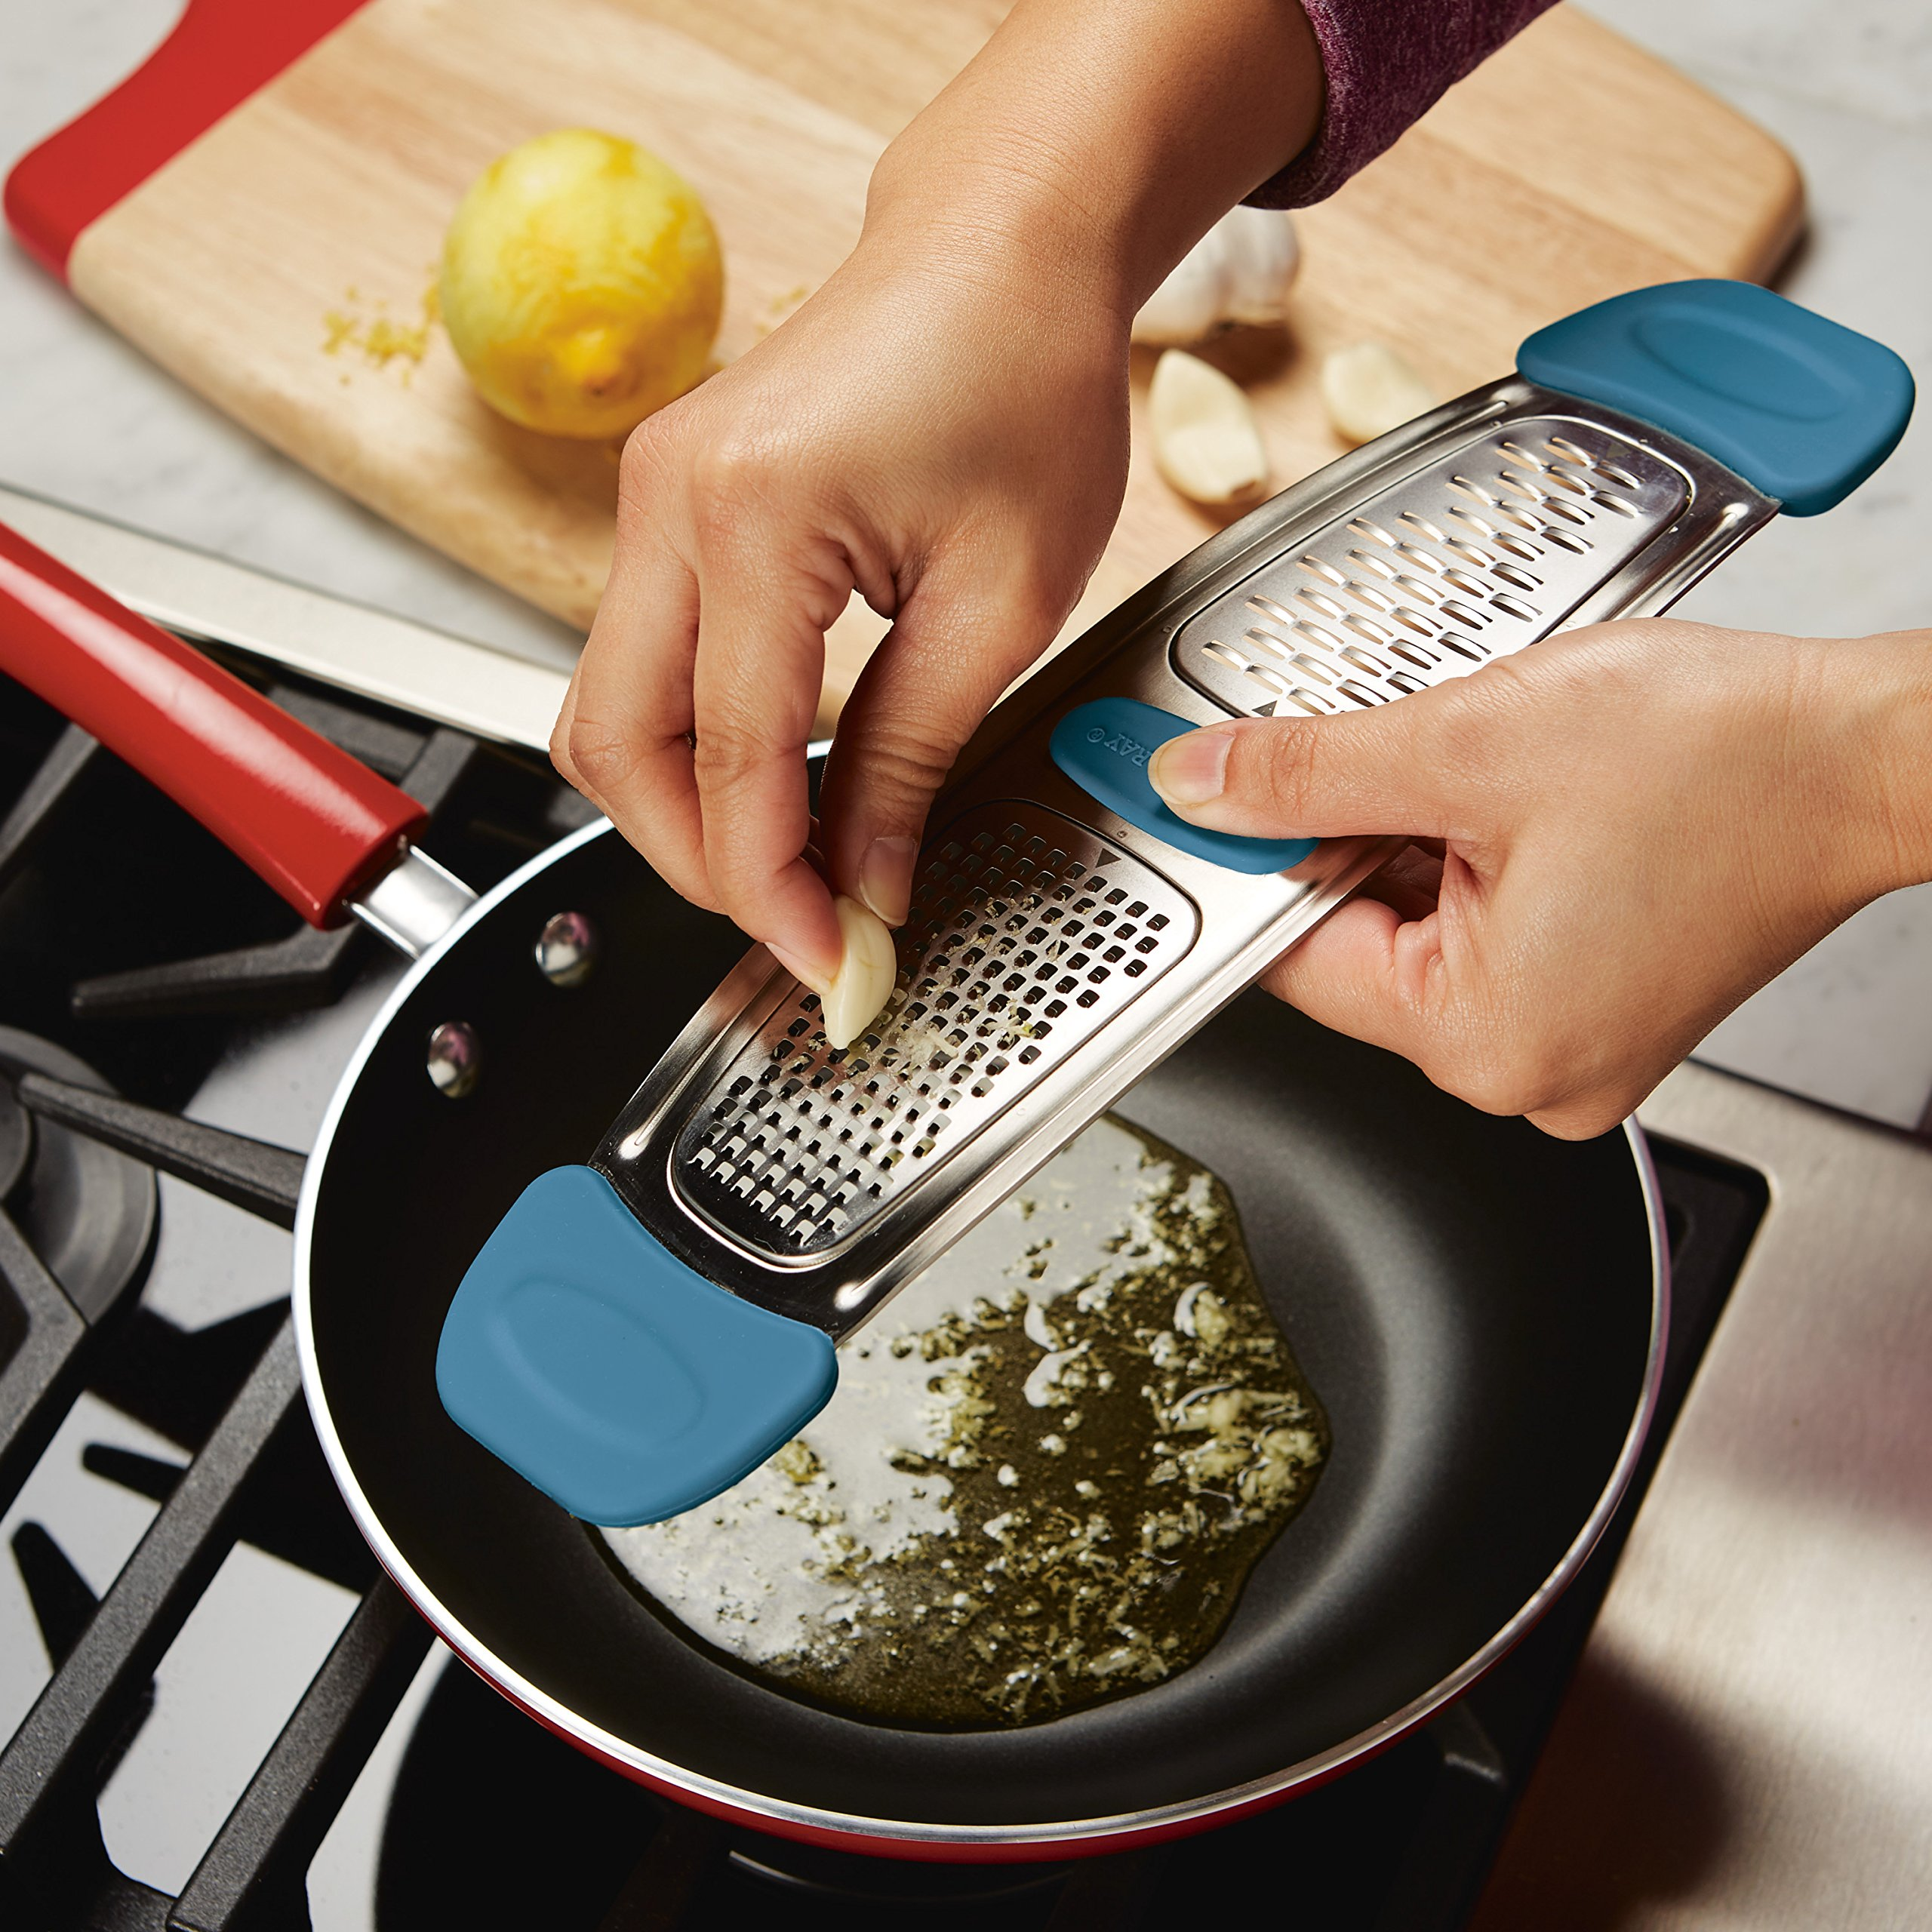 Rachael Ray 46913 Tools Grater, Small, Marine Blue by Rachael Ray (Image #2)